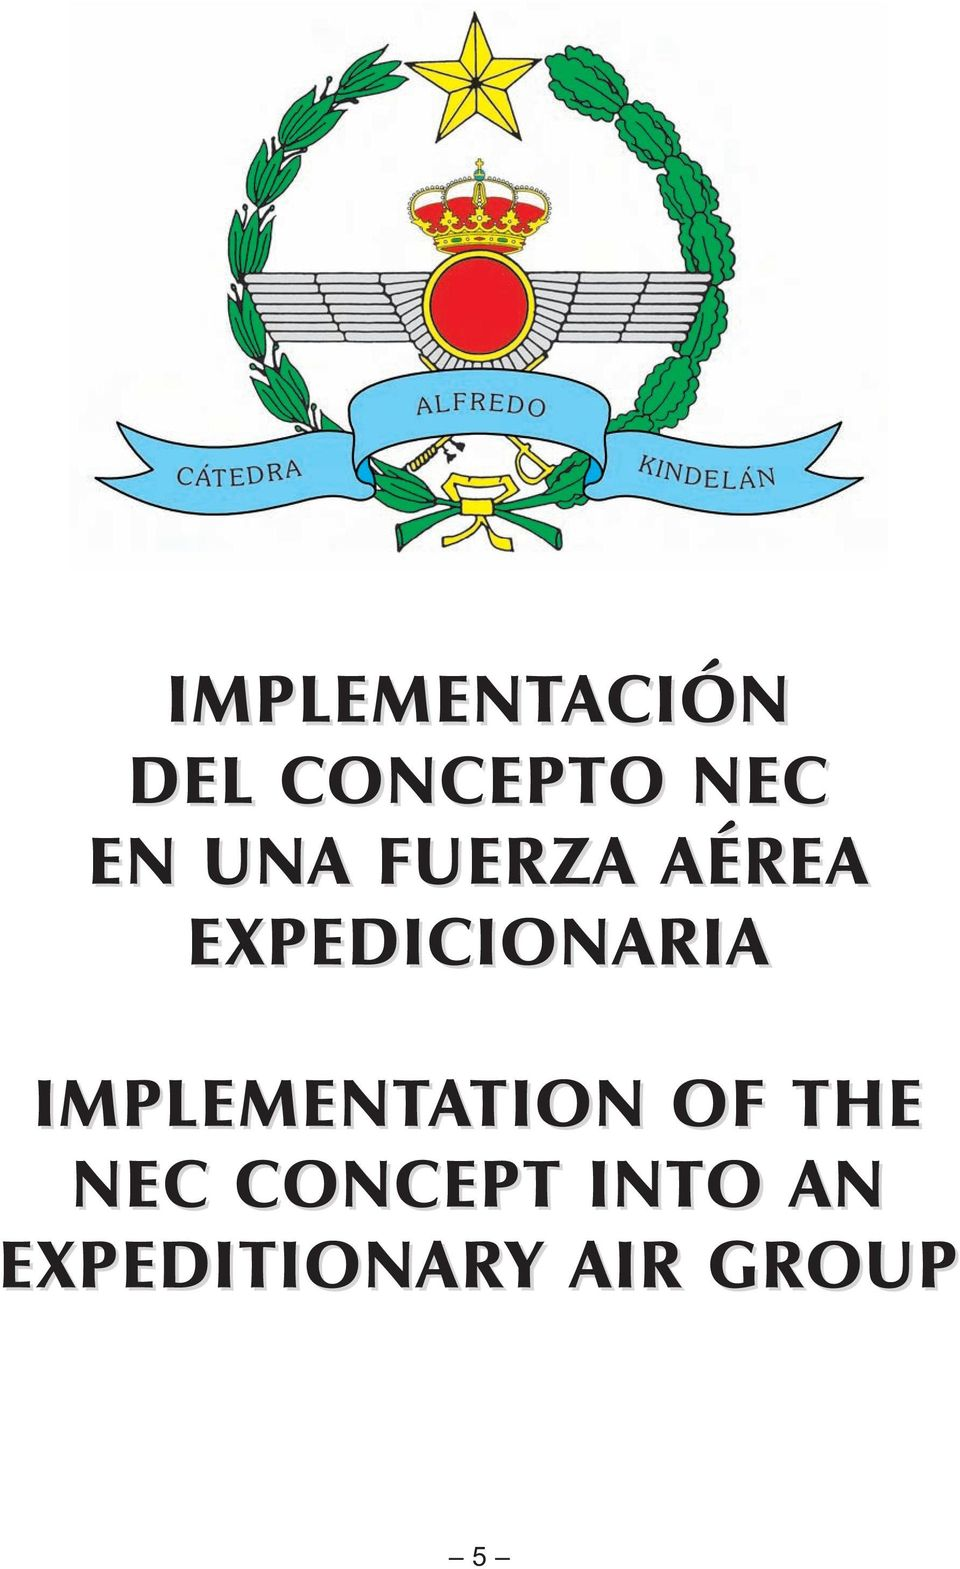 IMPLEMENTATION TION OF THE NEC